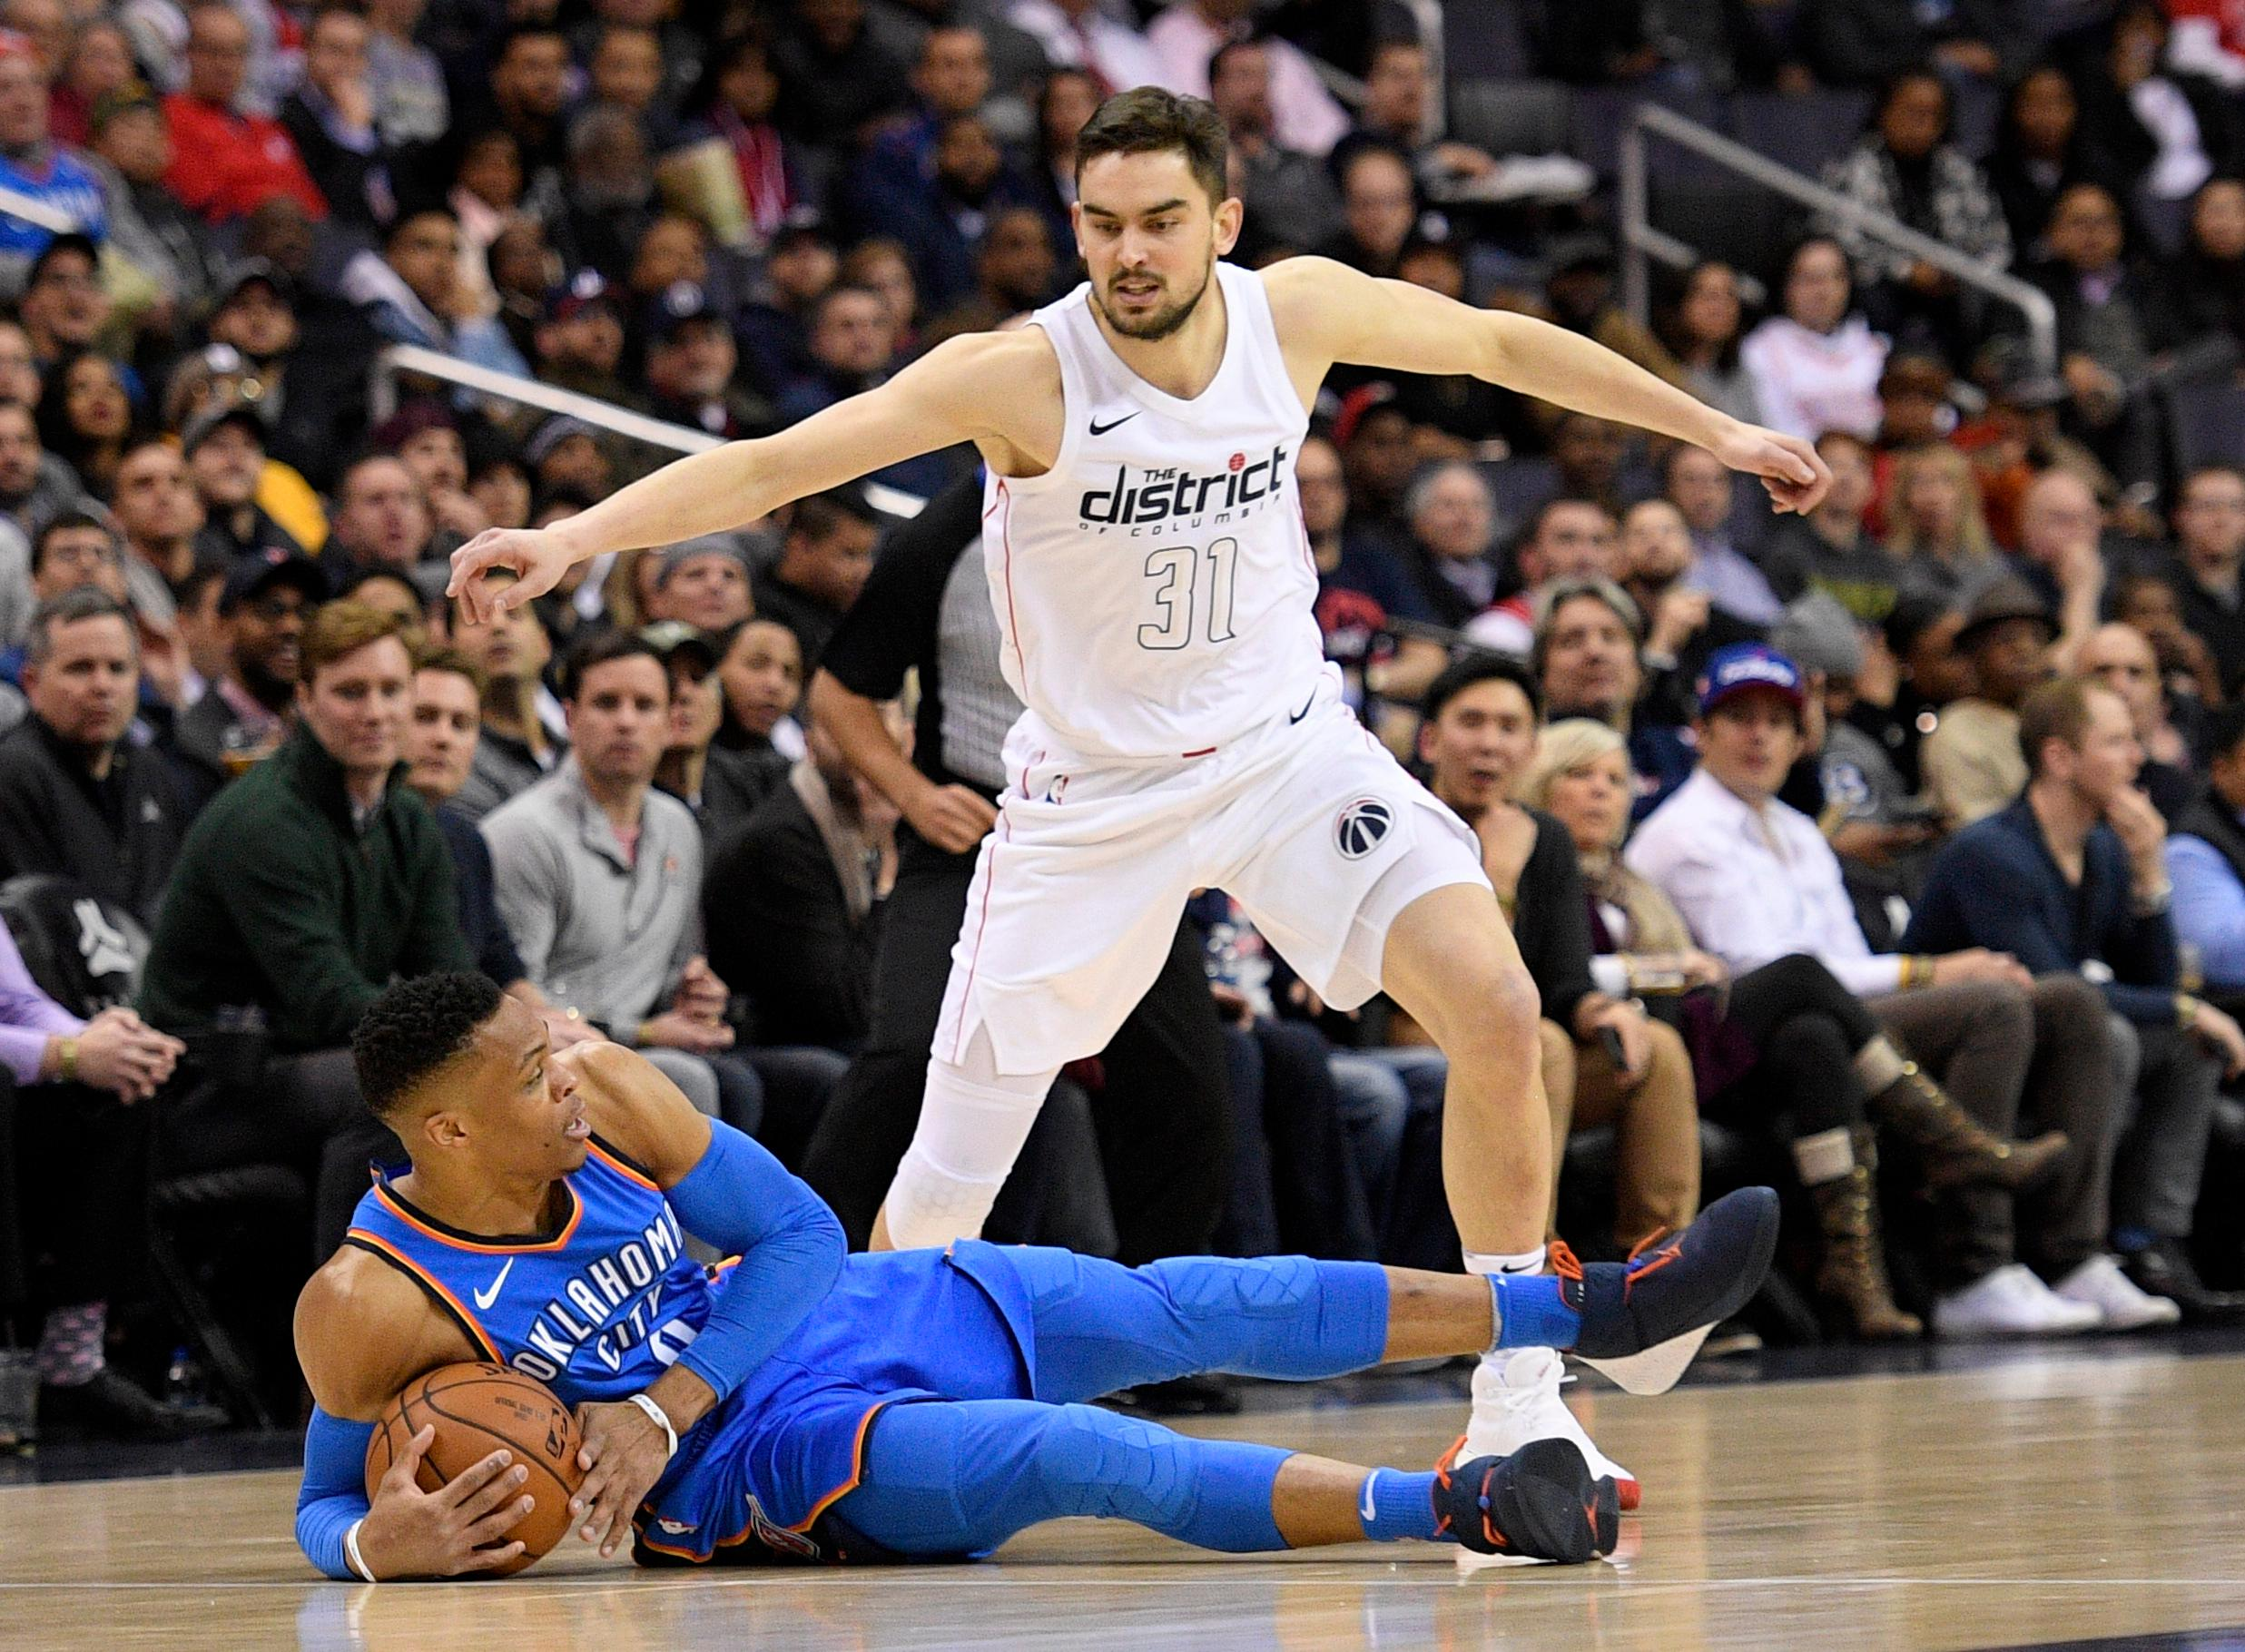 Oklahoma City Thunder guard Russell Westbrook, bottom, holds the ball against Washington Wizards forward Tomas Satoransky (31), of the Czech Republic, during the first half of an NBA basketball game, Tuesday, Jan. 30, 2018, in Washington. (AP Photo/Nick Wass)